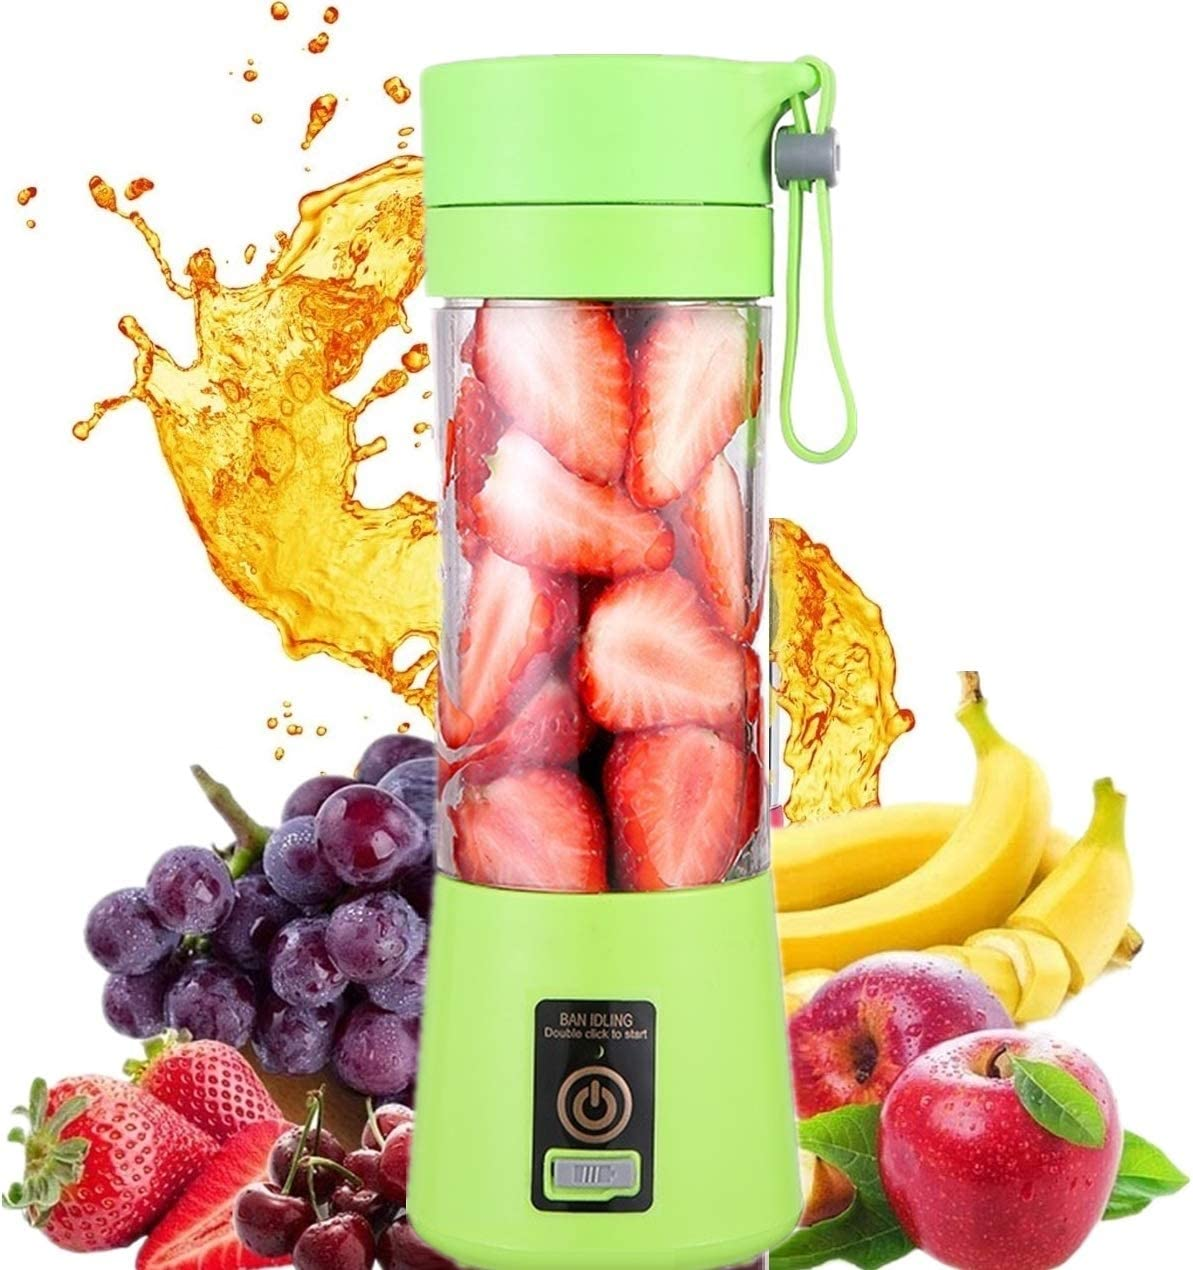 HANBO Electric Portable Juicer Blender Cup, Household Fruit Mixer with Six Blades in 3D, 380ml USB Rechargeable Juice Blender Magnetic Secure Switch Electric Fruit Mixer (Green)